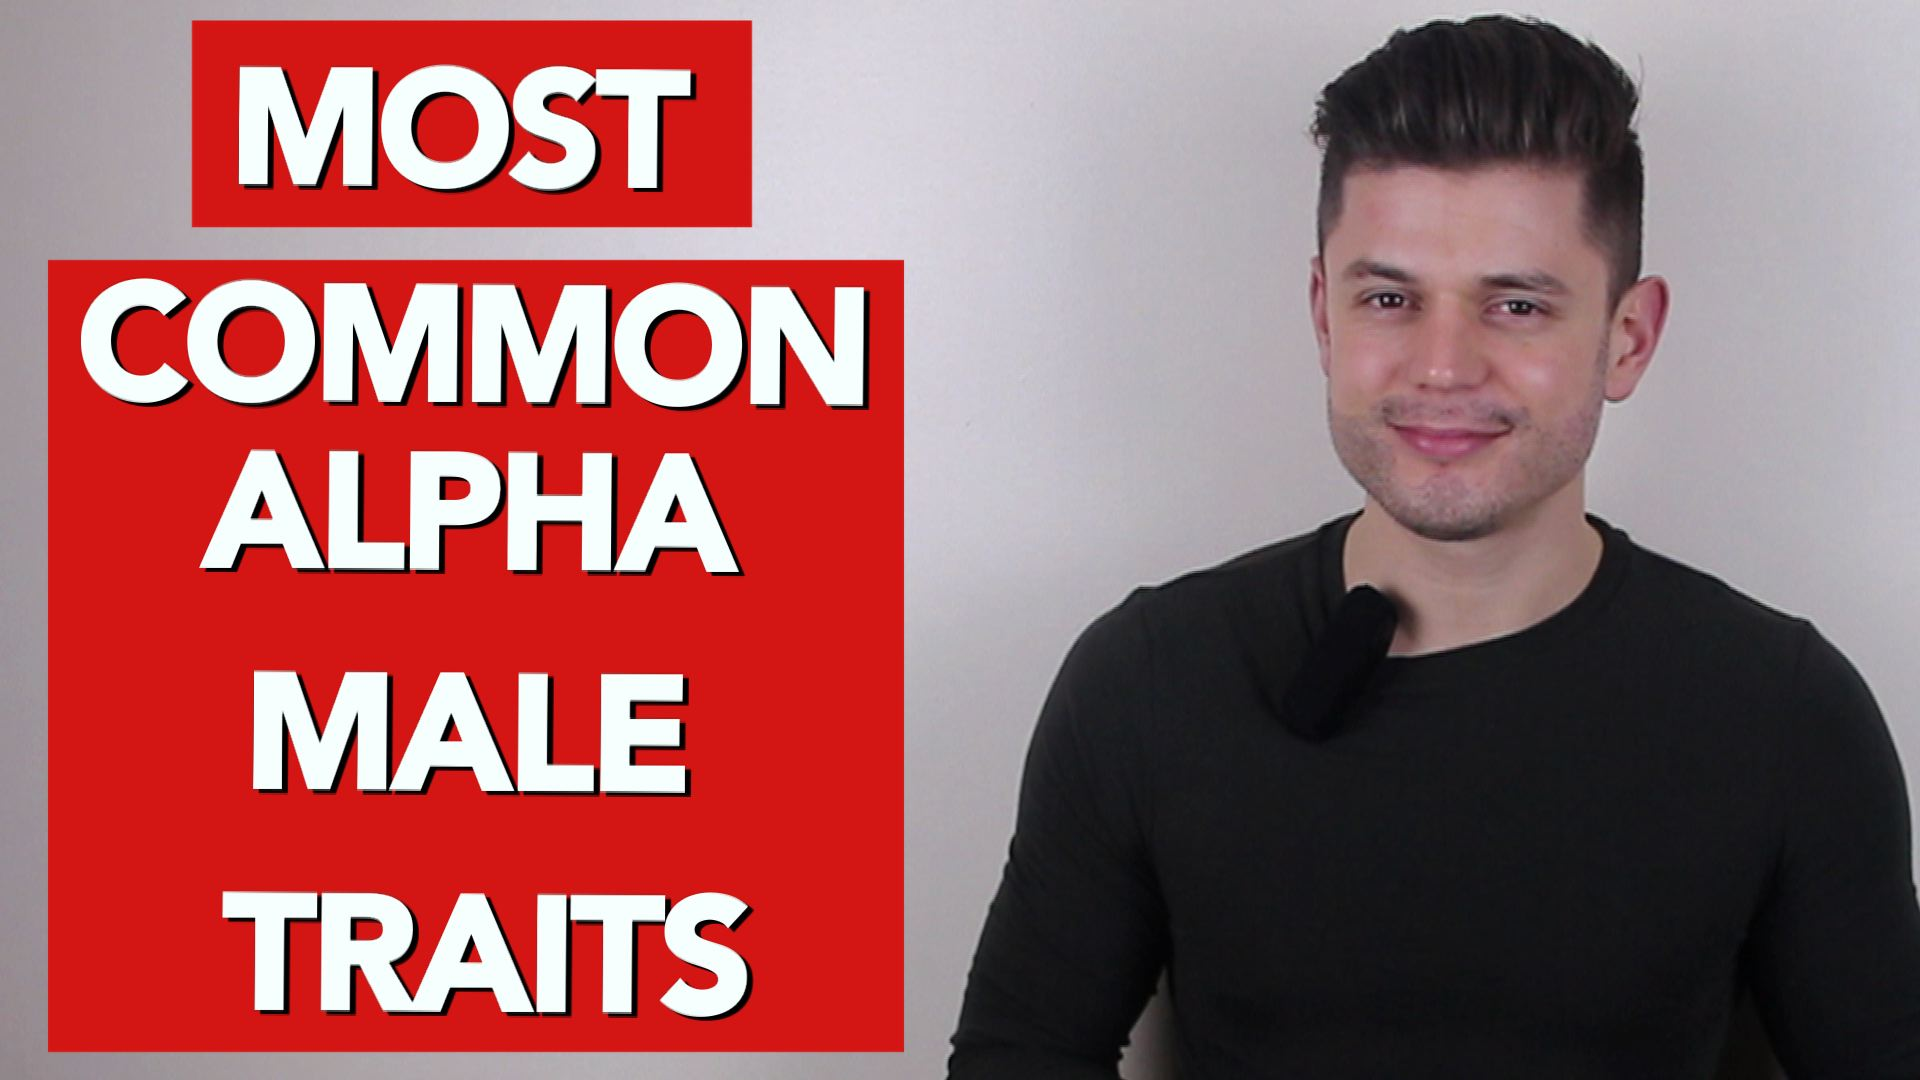 Alpha male traits dating quotes 7